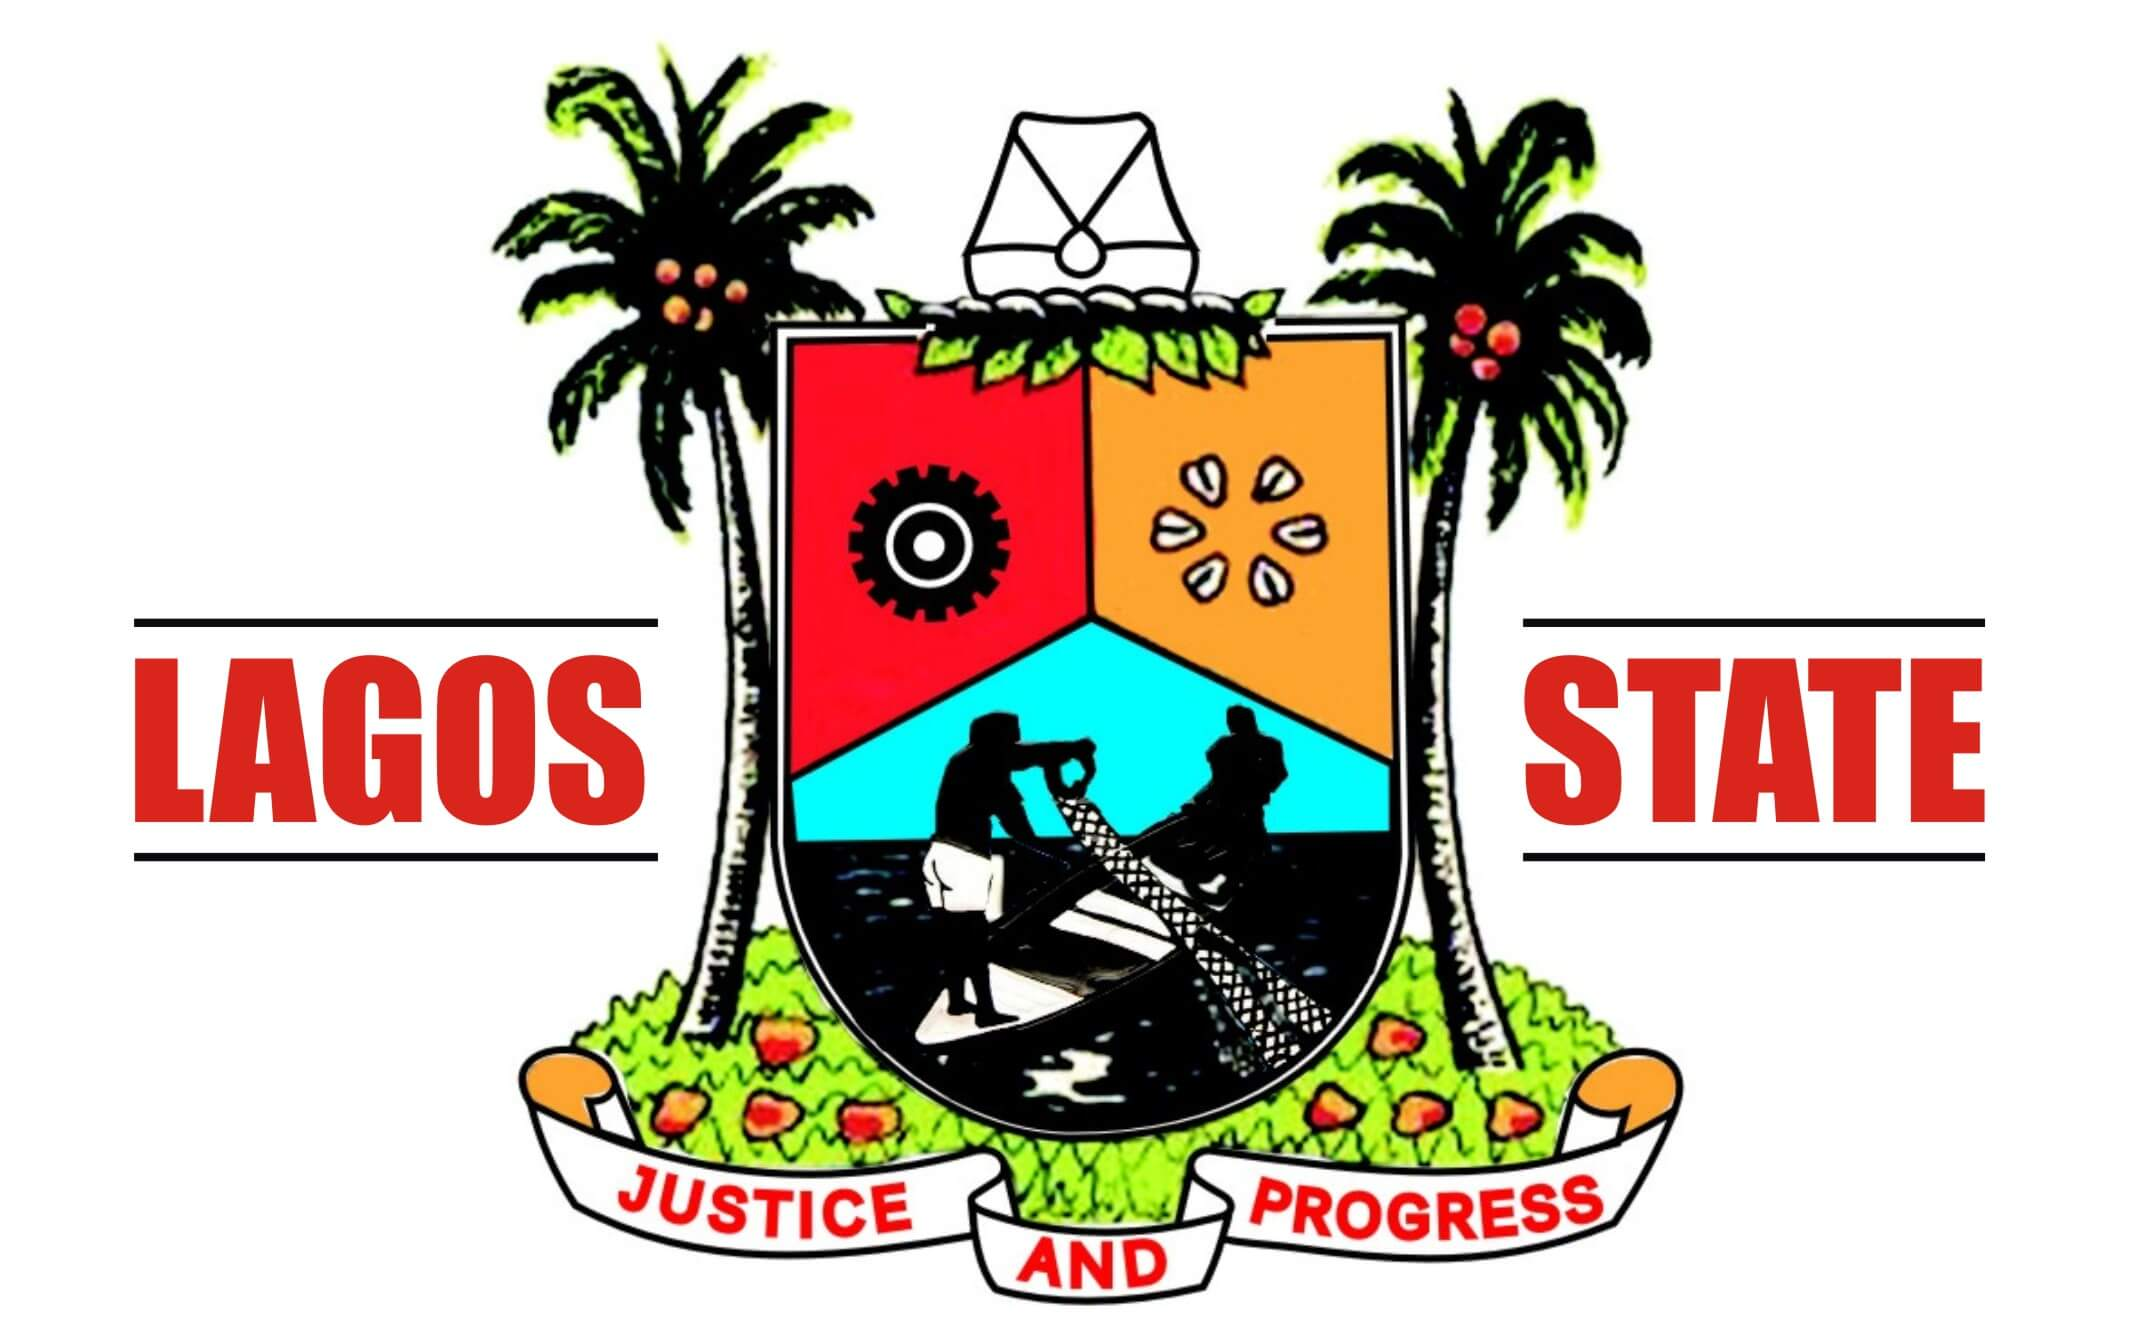 Lagos warns on illegal property development